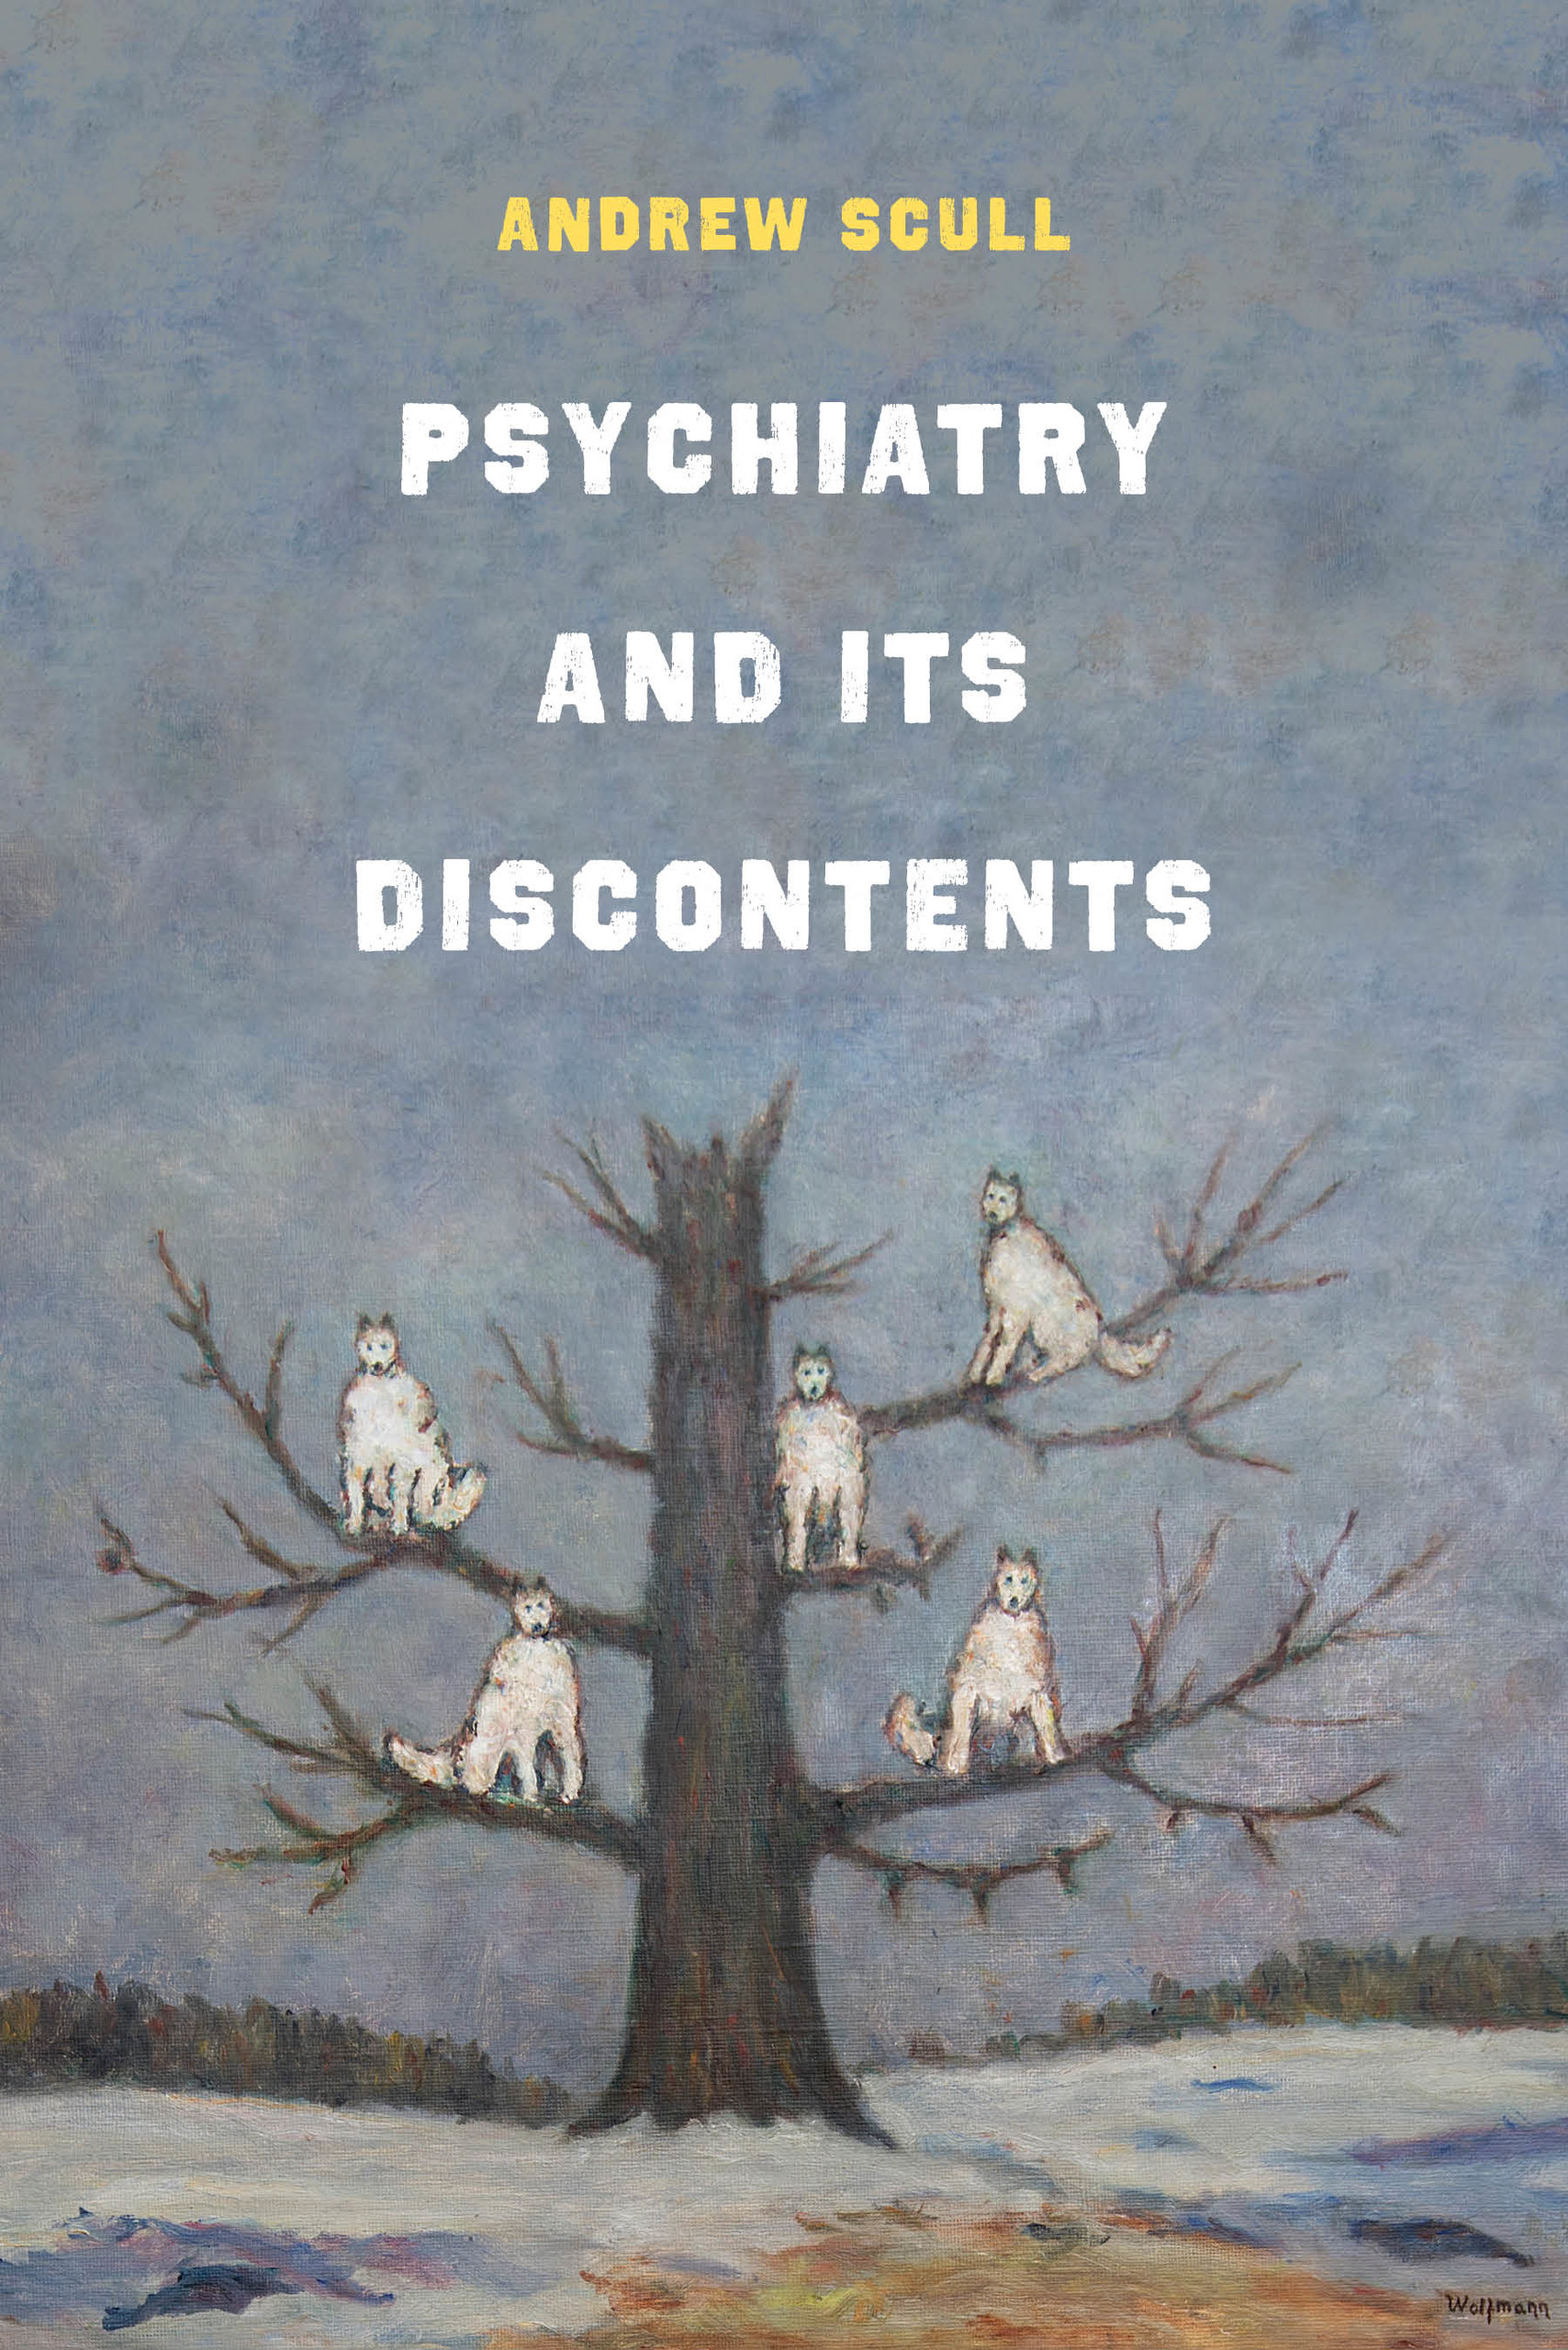 Psychiatry and Its Discontents by Andrew Scull - Hardcover